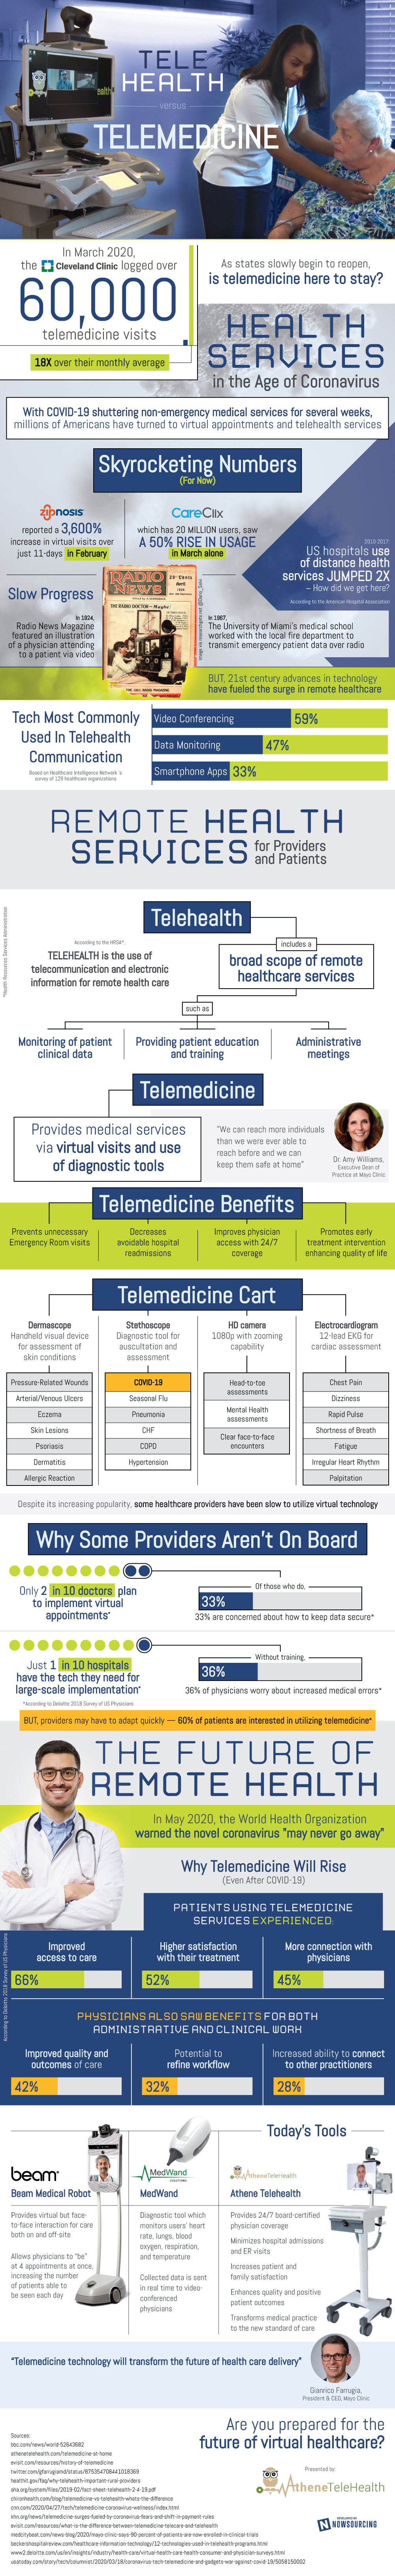 Telehealth And Telemedicine In The Pandemic